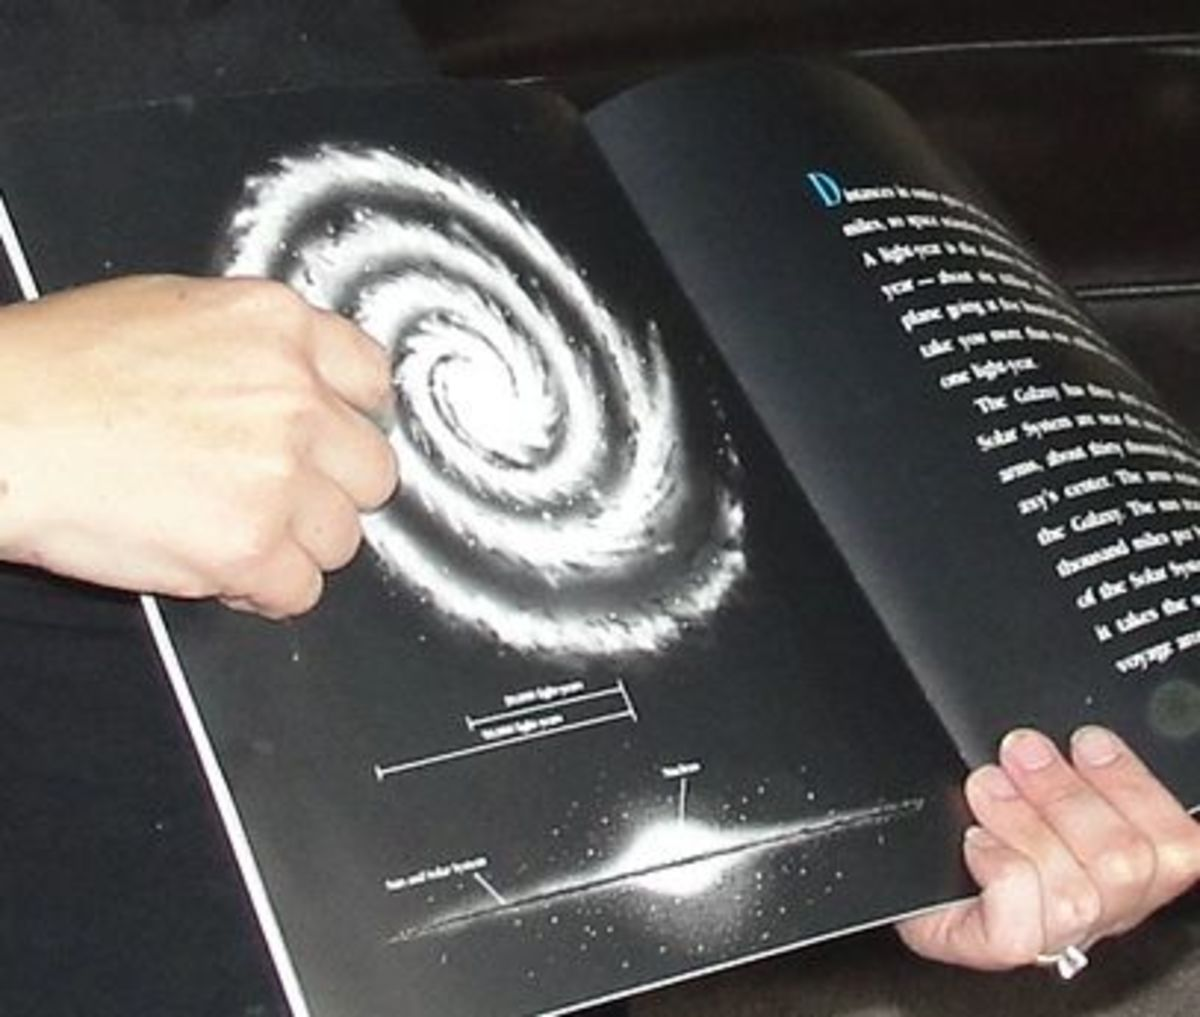 Showing the children the picture of the Milky Way Galaxy from the book Galaxies by Seymour Simon